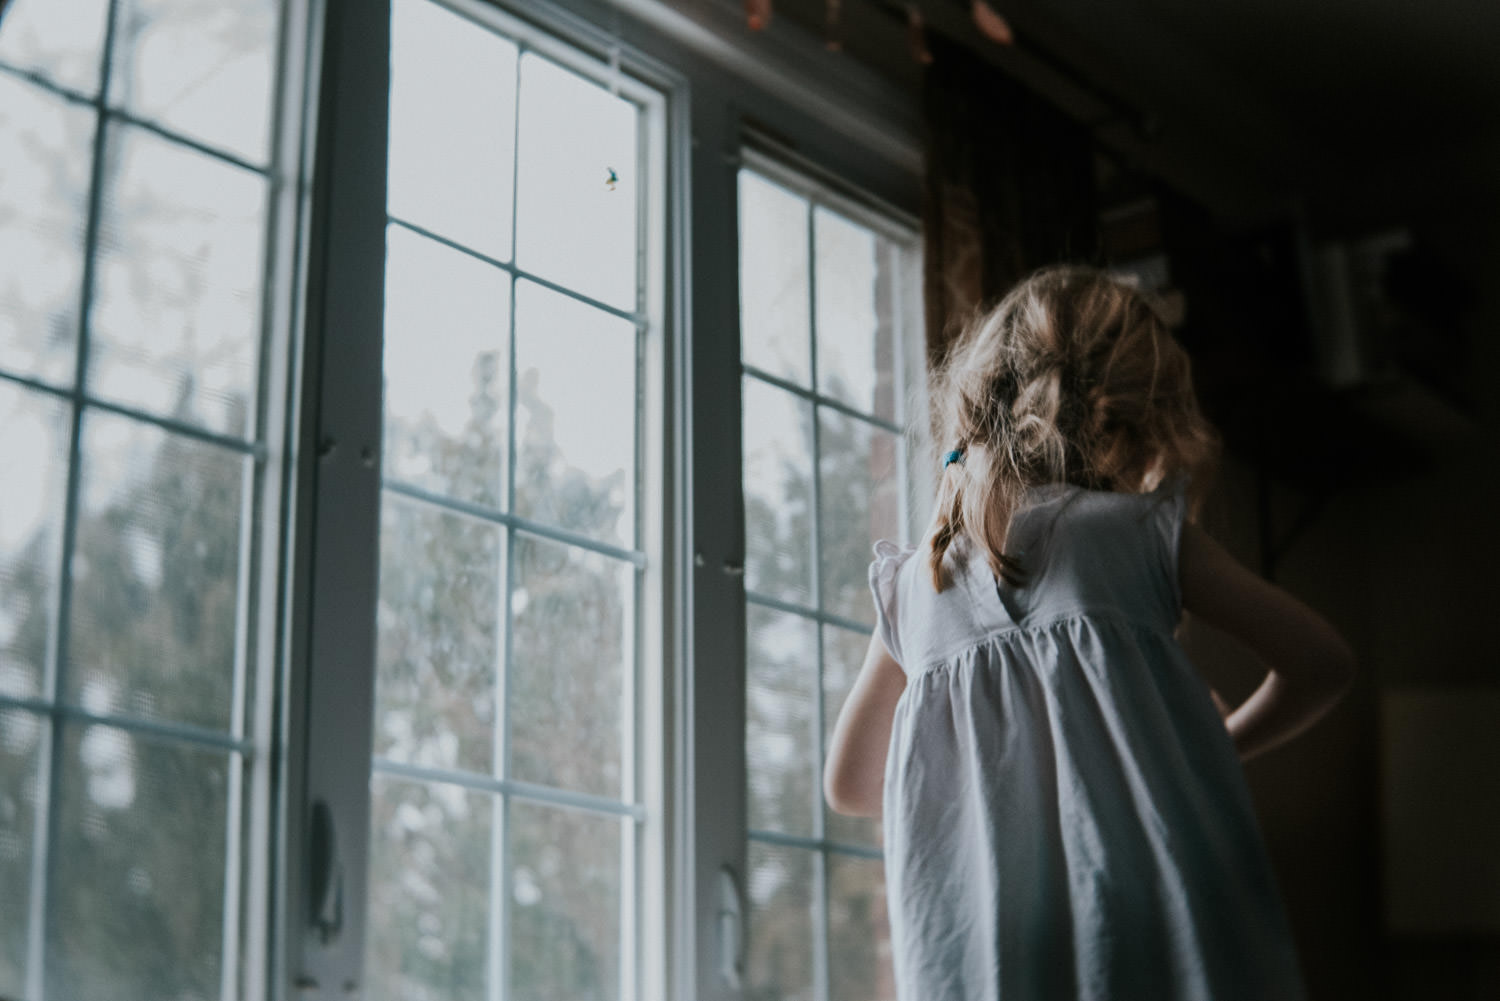 A little girl stands in front of a large window.